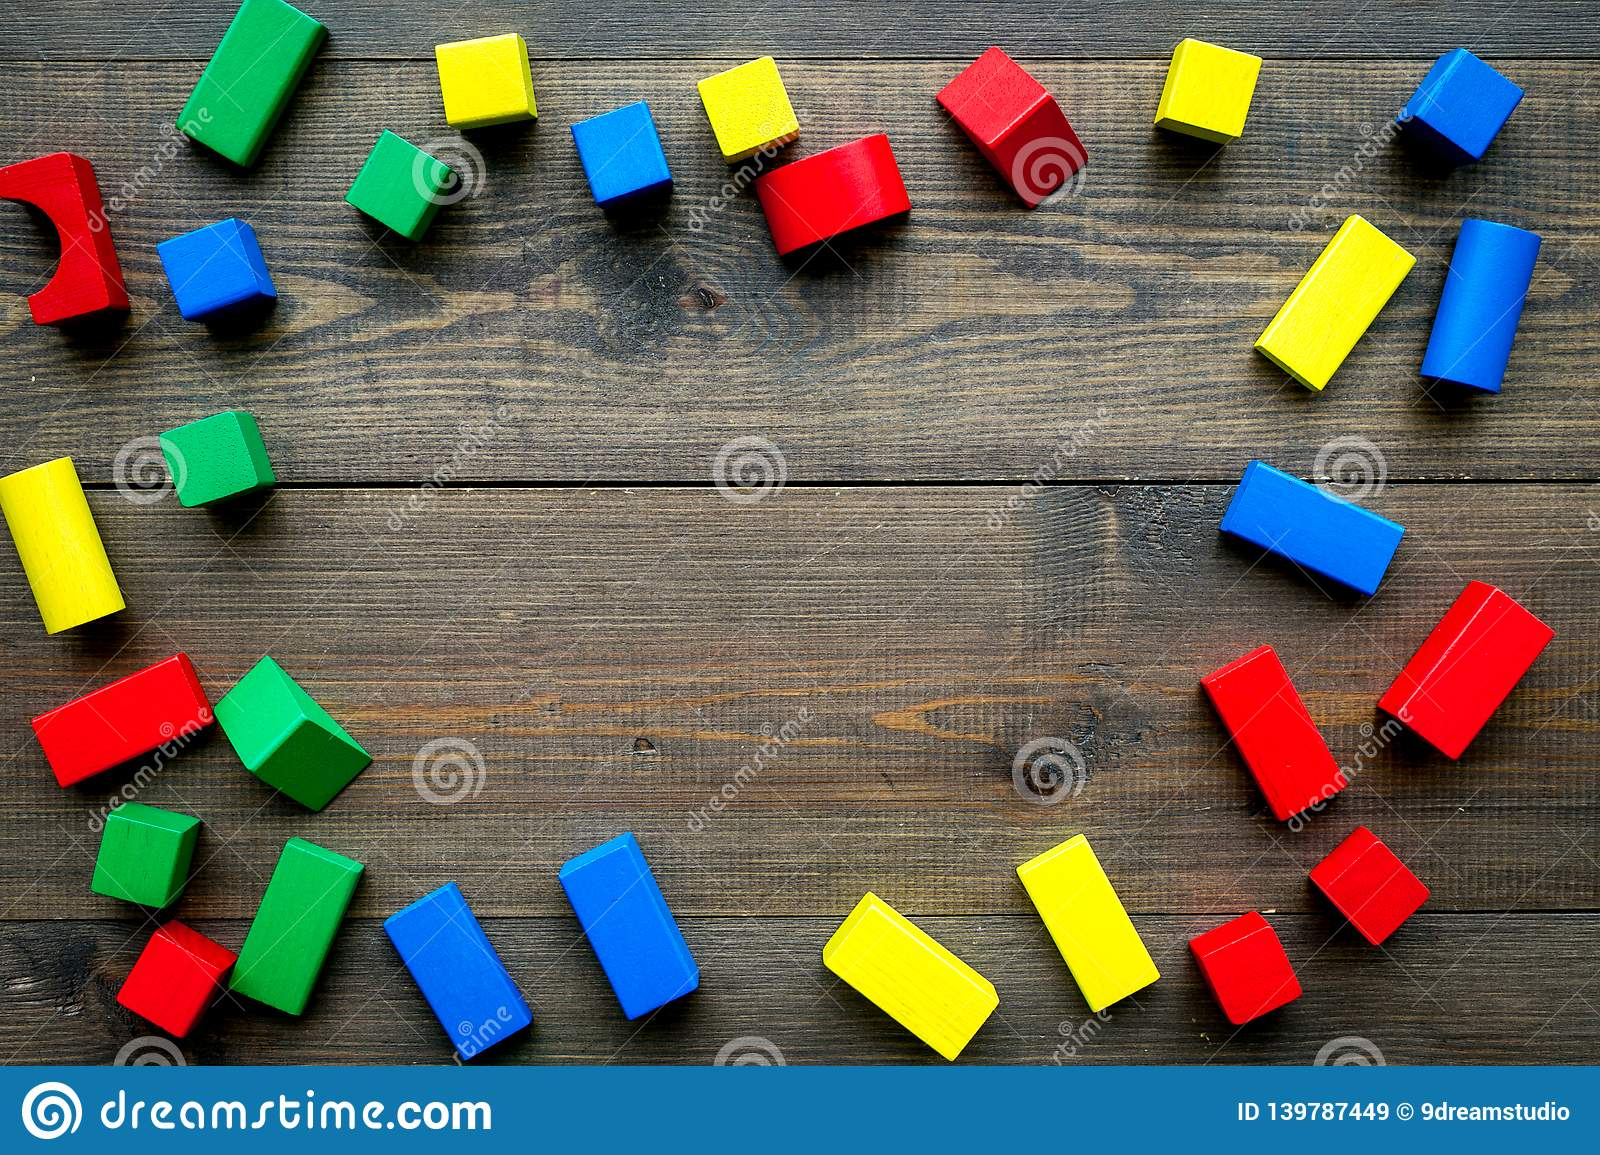 Construction game for kids. Wooden building blocks, toy bricks on dark wooden background top view space for text frame